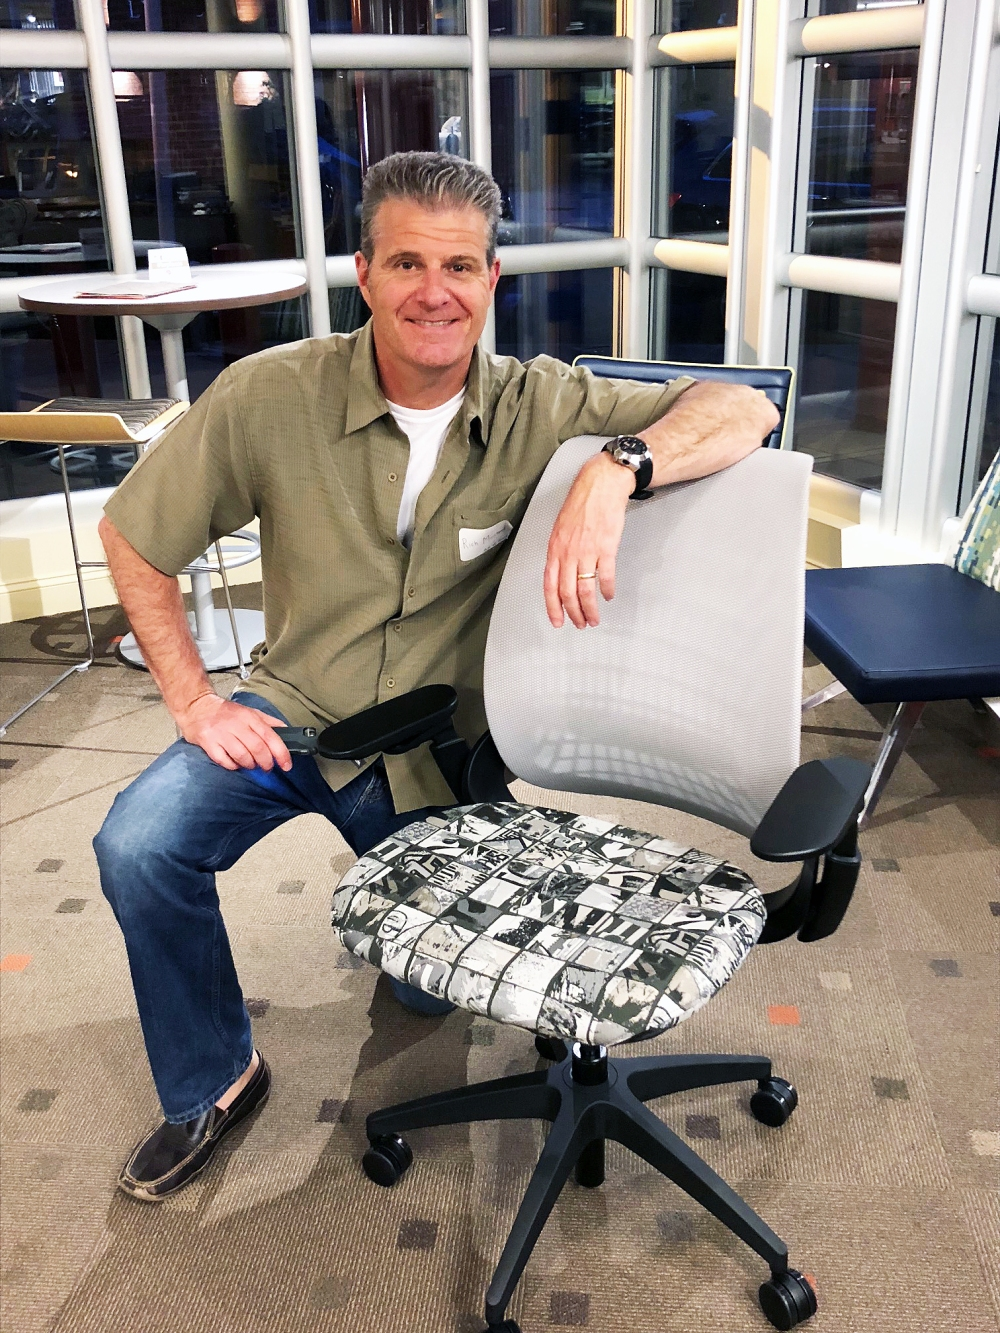 Rich with Mimeo Task Chair